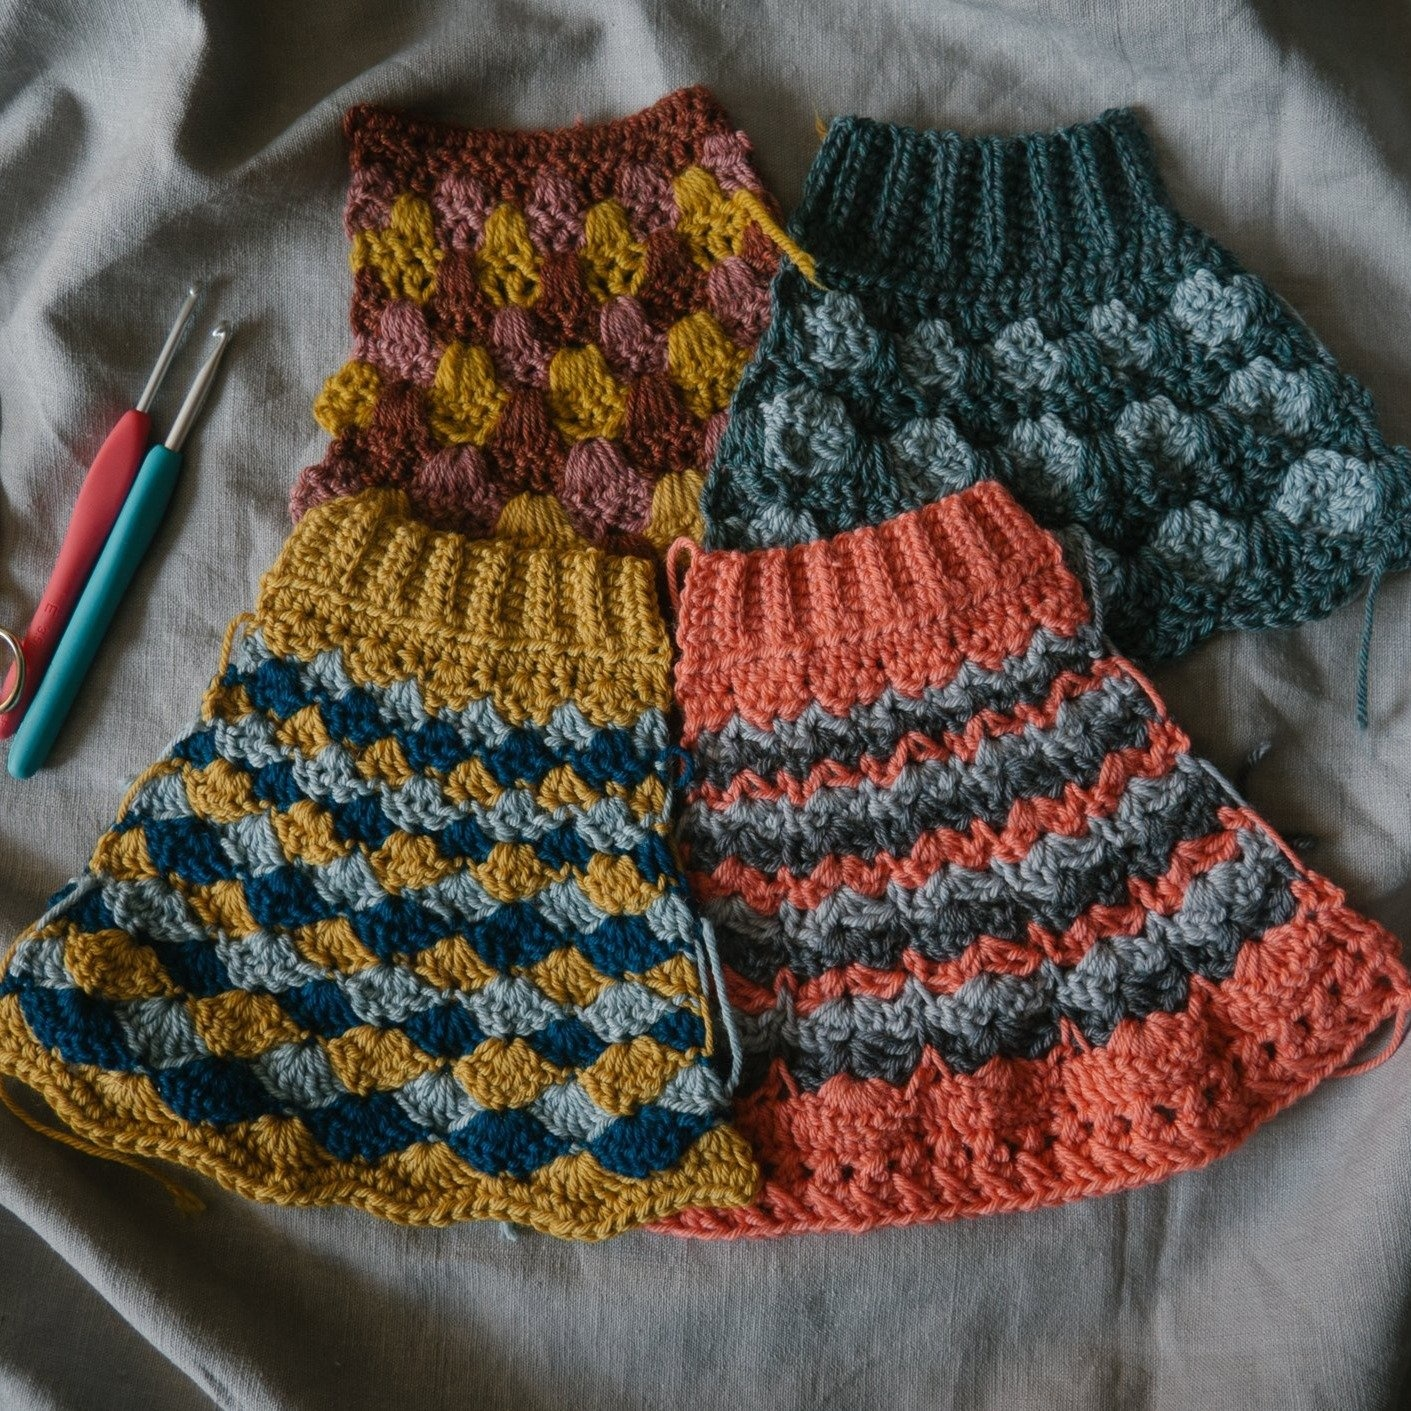 The Crochet Project Pick and Mix